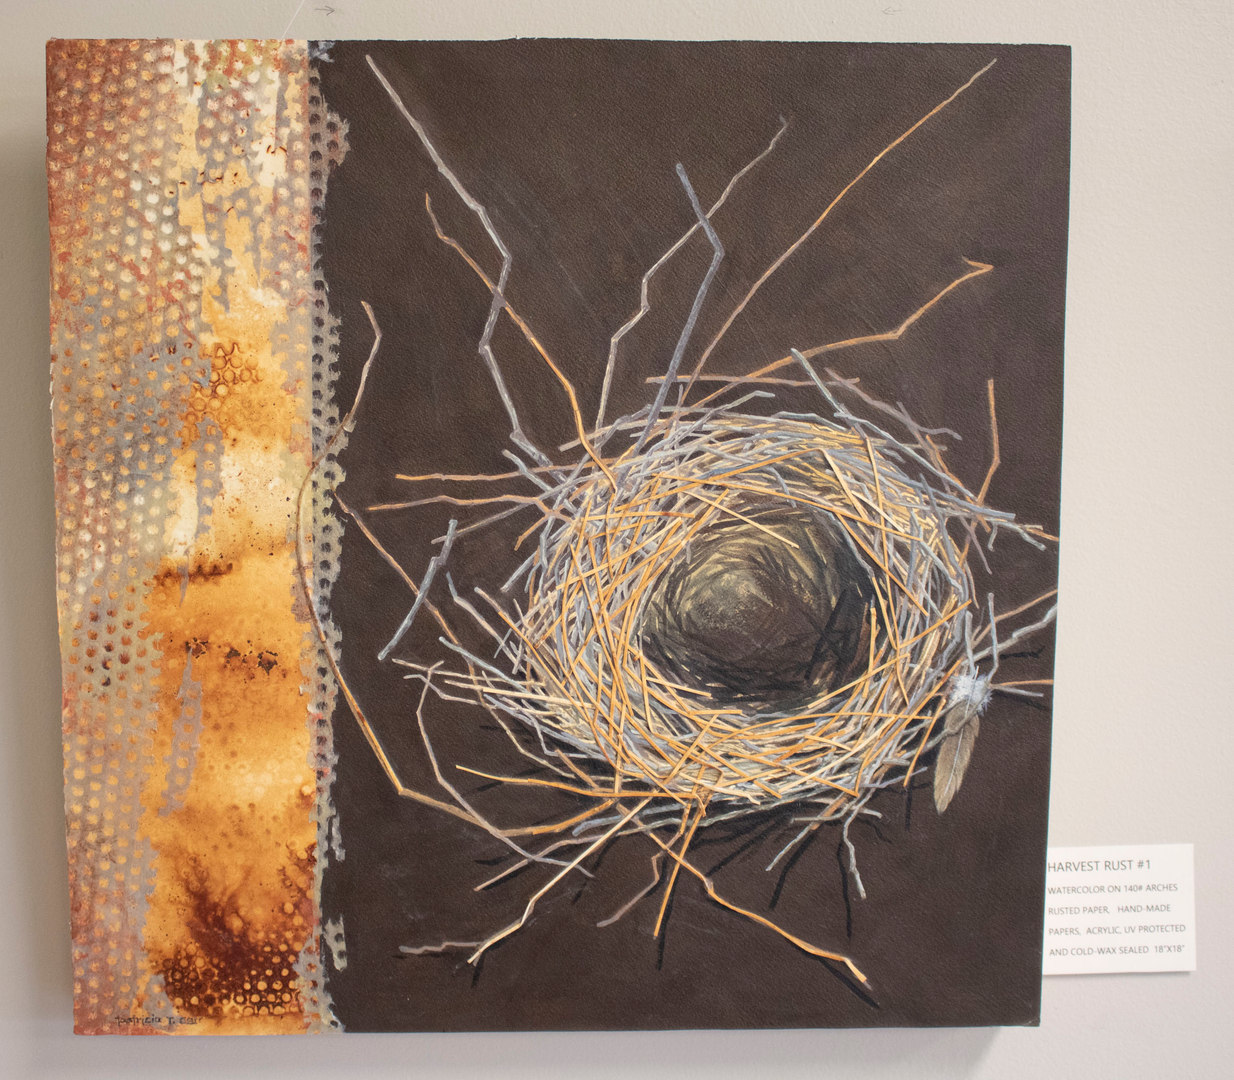 Harvest Rust #1 by Patricia Carr